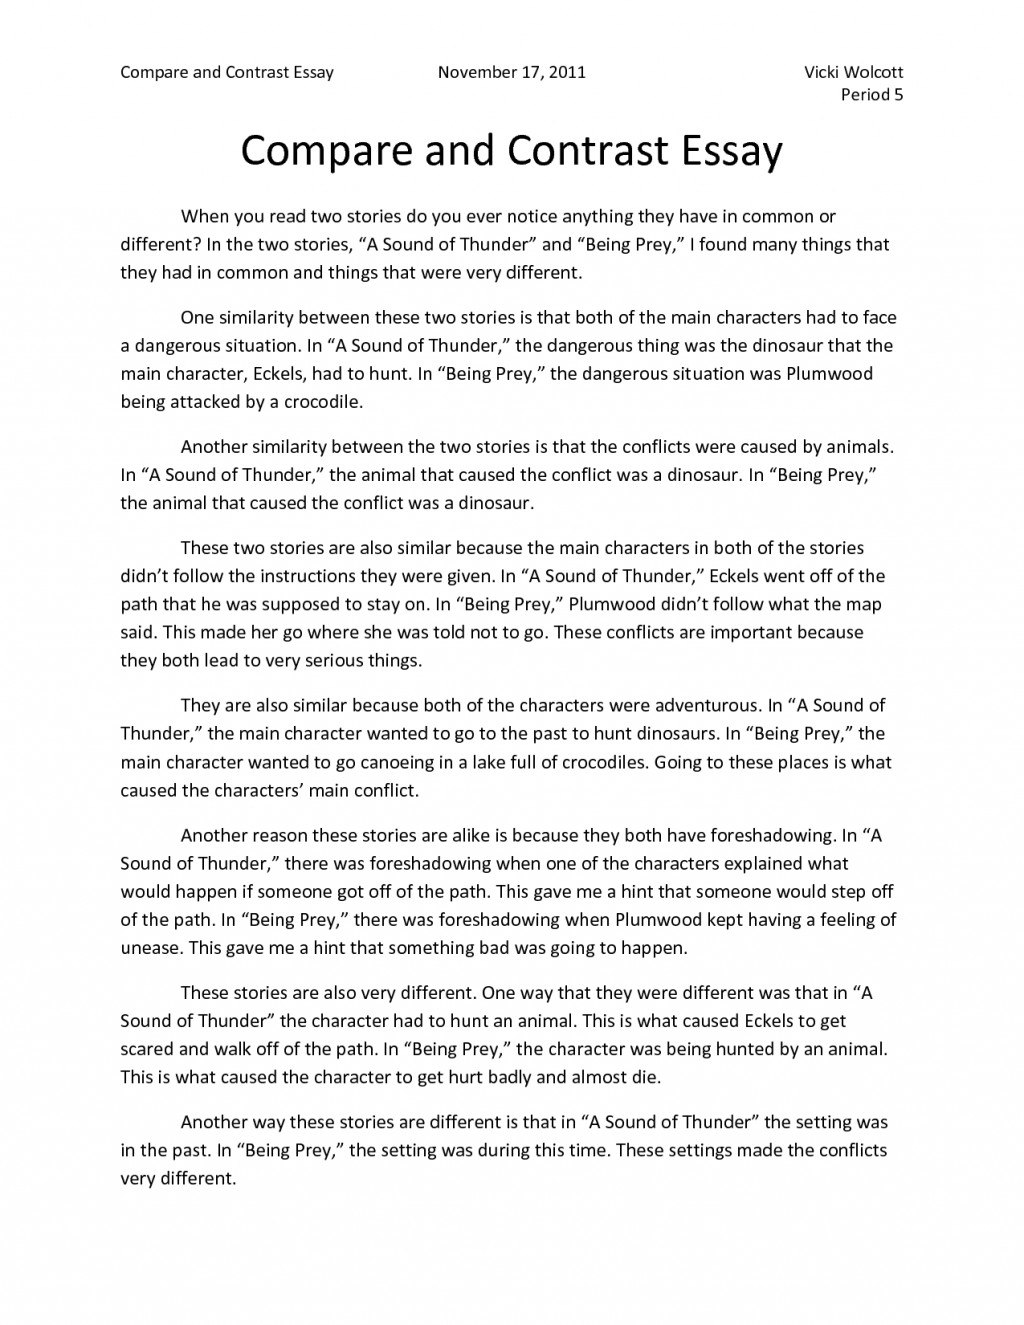 004 Essay Example Compare And Contrast Gallery Template Drawing Art Throughout College Examples Introduction Question Scholarship Free Edexcel Conclusion Frightening Topics Outline Doc Sample 4th Grade Large